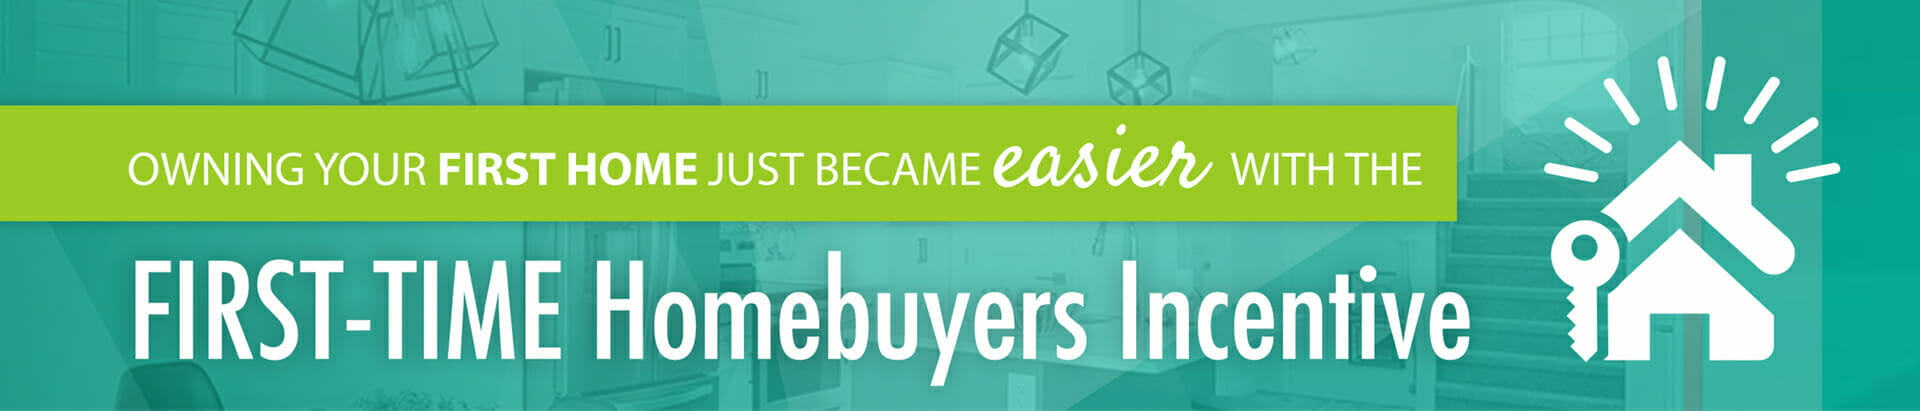 first time home buyers initiative, cmhc, savings, mortgage